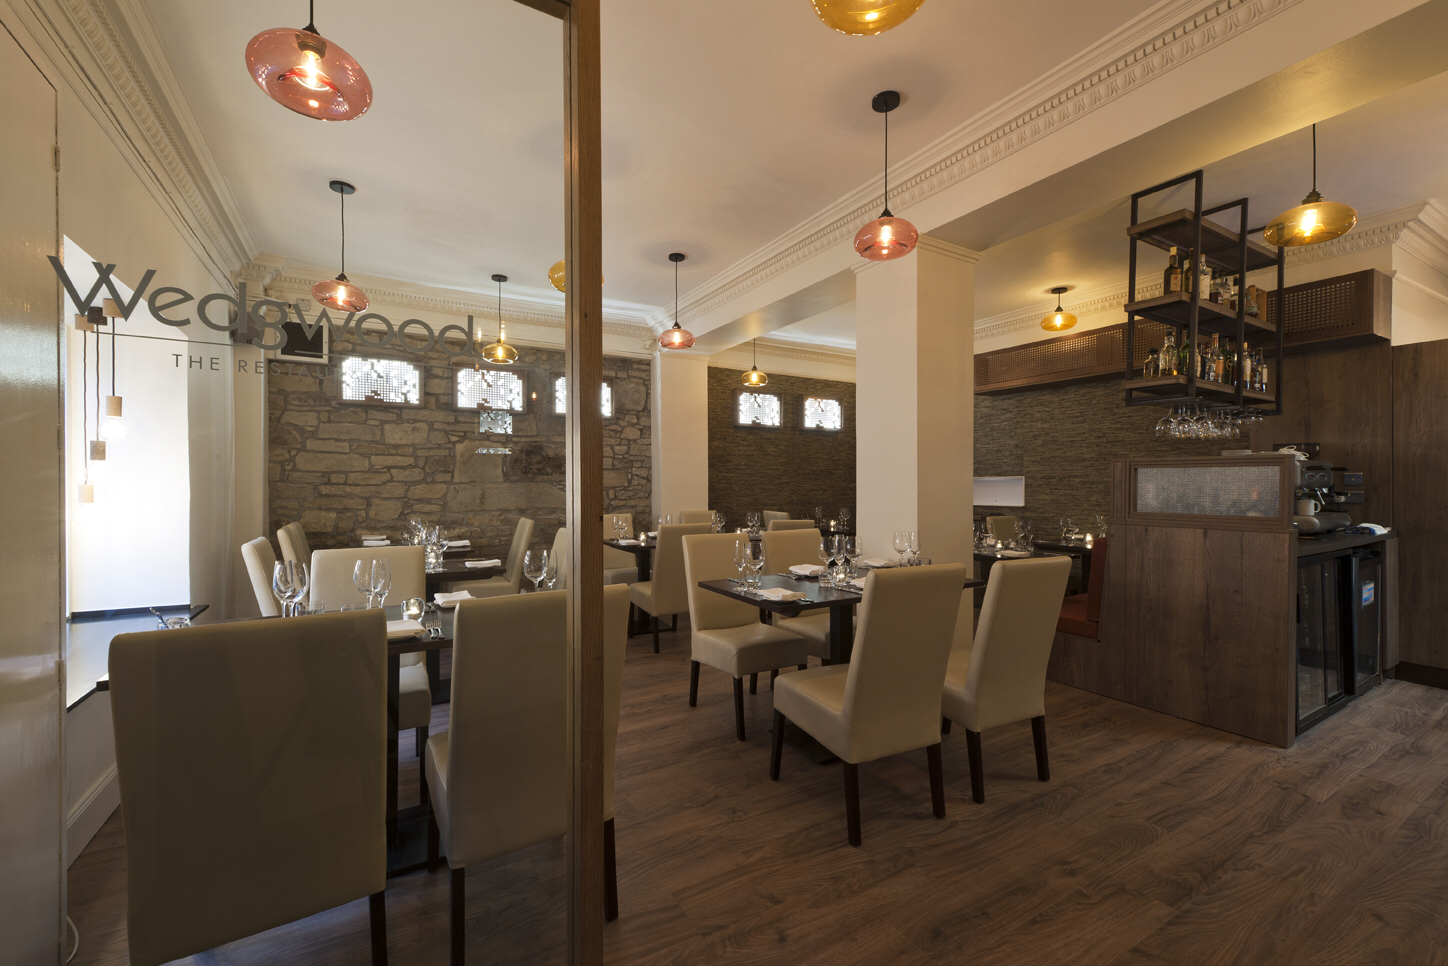 Gerrys Kitchen Wedgwood The RestaurantReopened following a